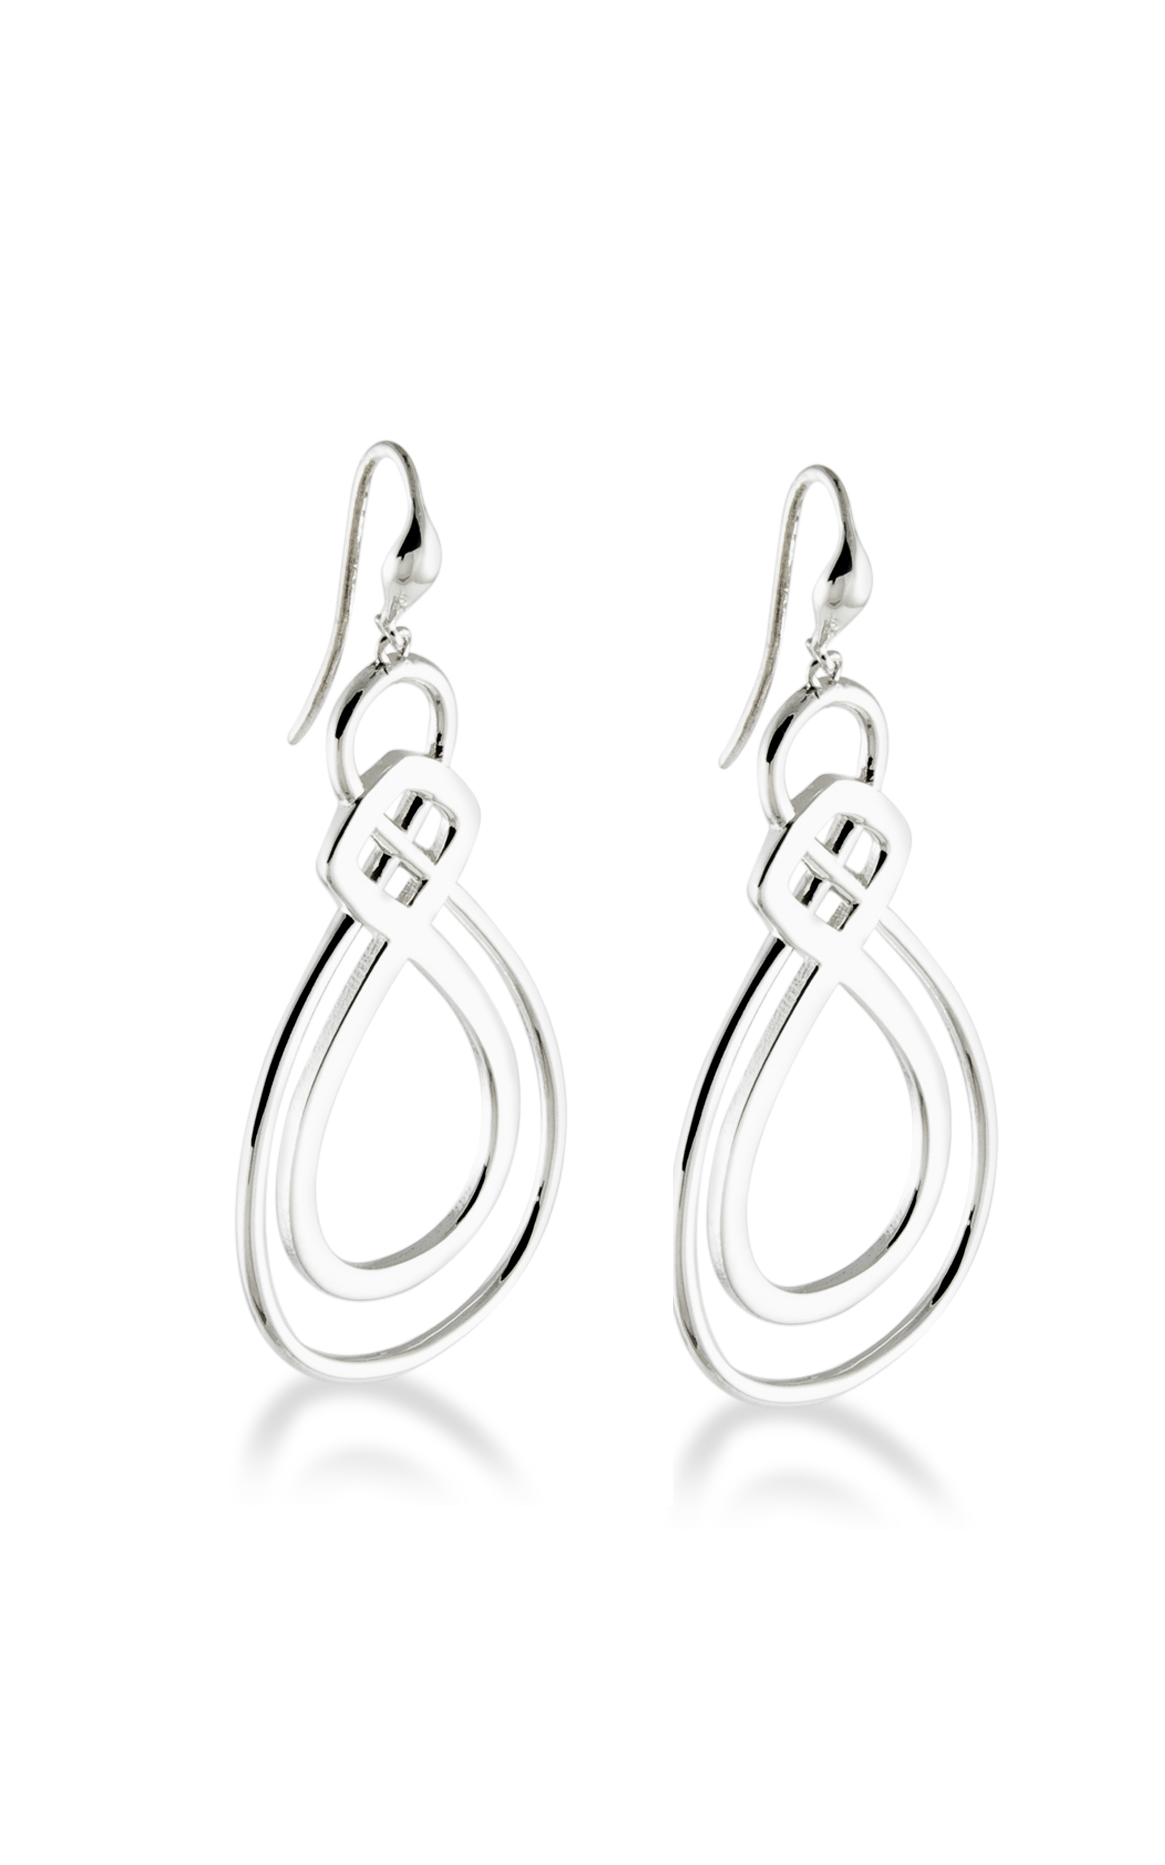 Zina Wired Earrings B1717 product image